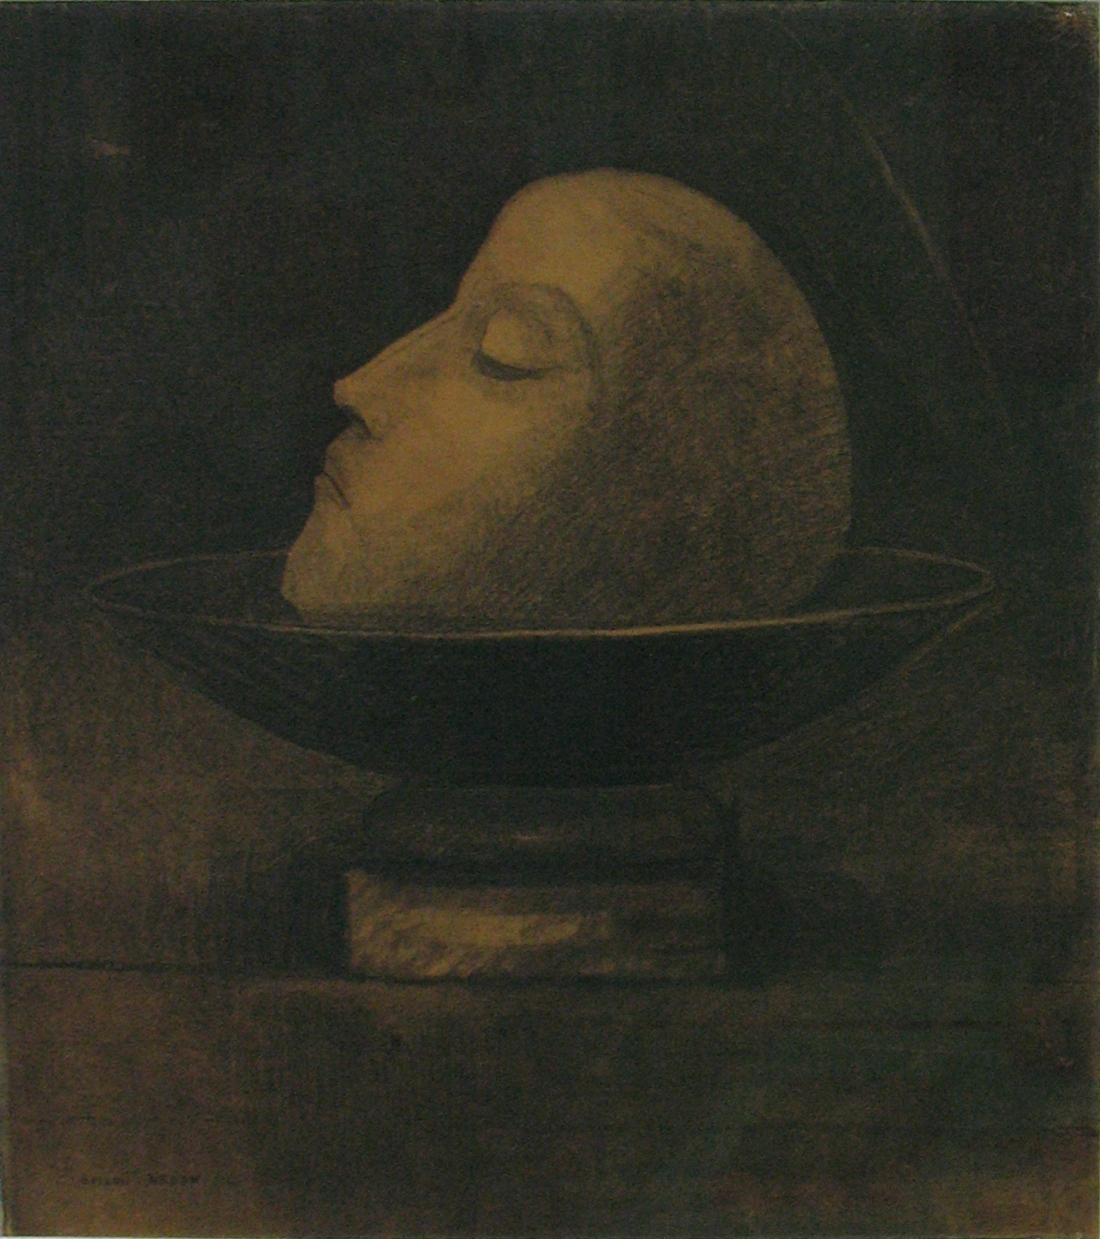 Head of a Martyr by Odilon Redon (1877)